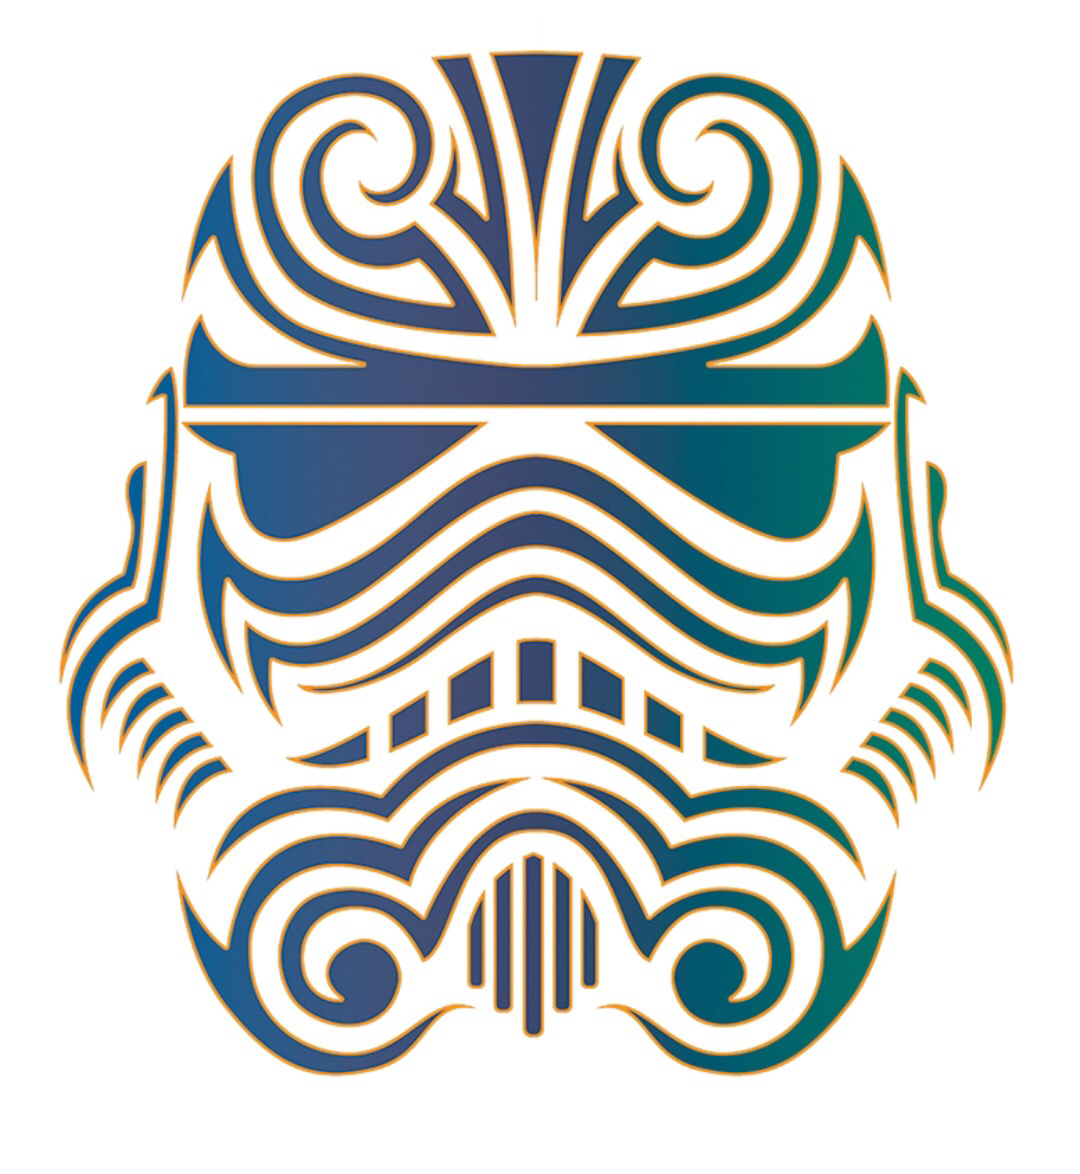 1080x1174 Stormtrooper Helmet Art These Are The Droids You'Re Looking